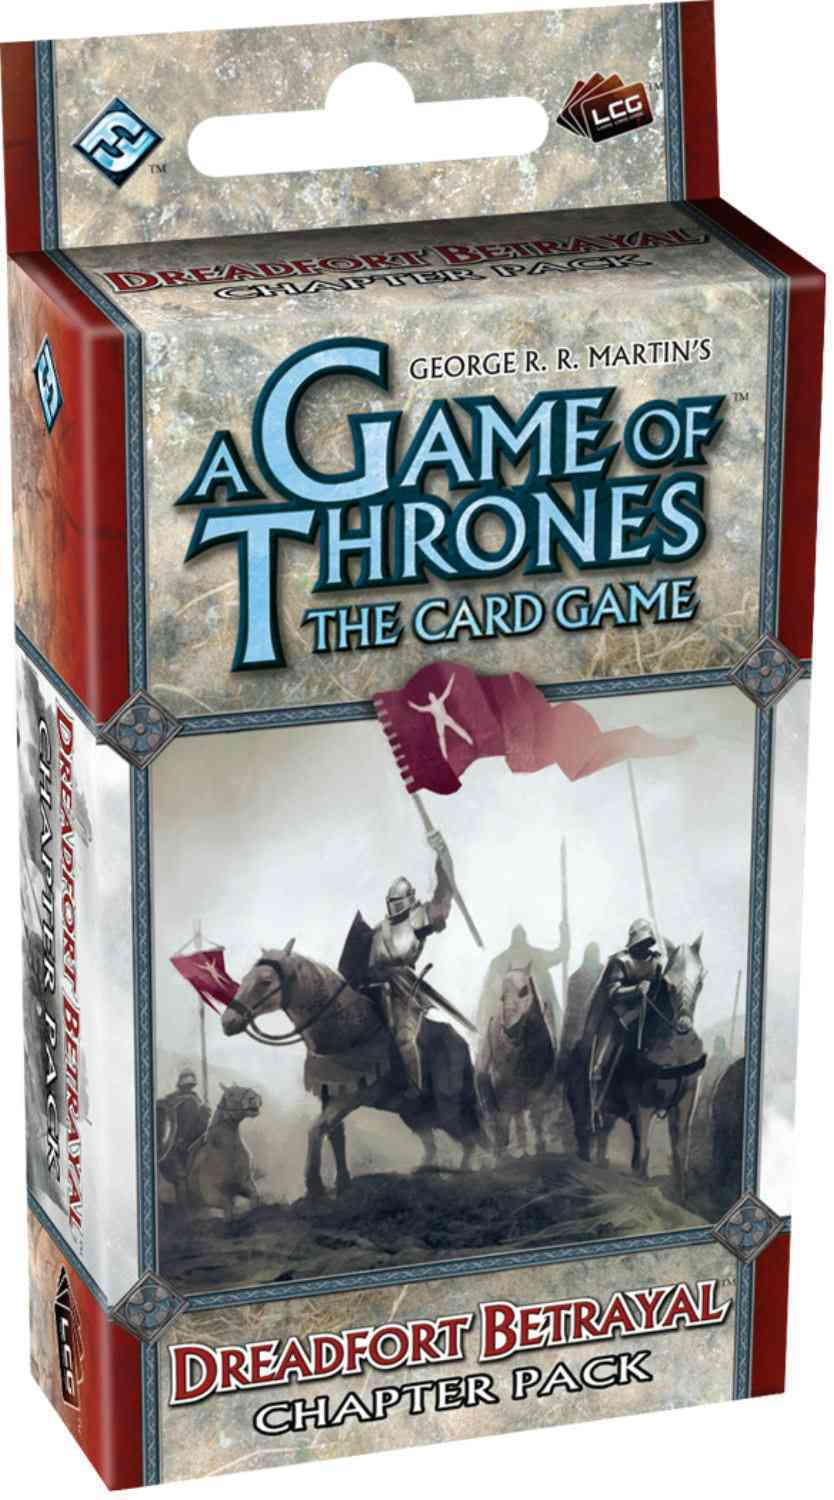 A Game of Thrones the Card Game: Dreadfort Betrayal Chapter Pack (Cards)